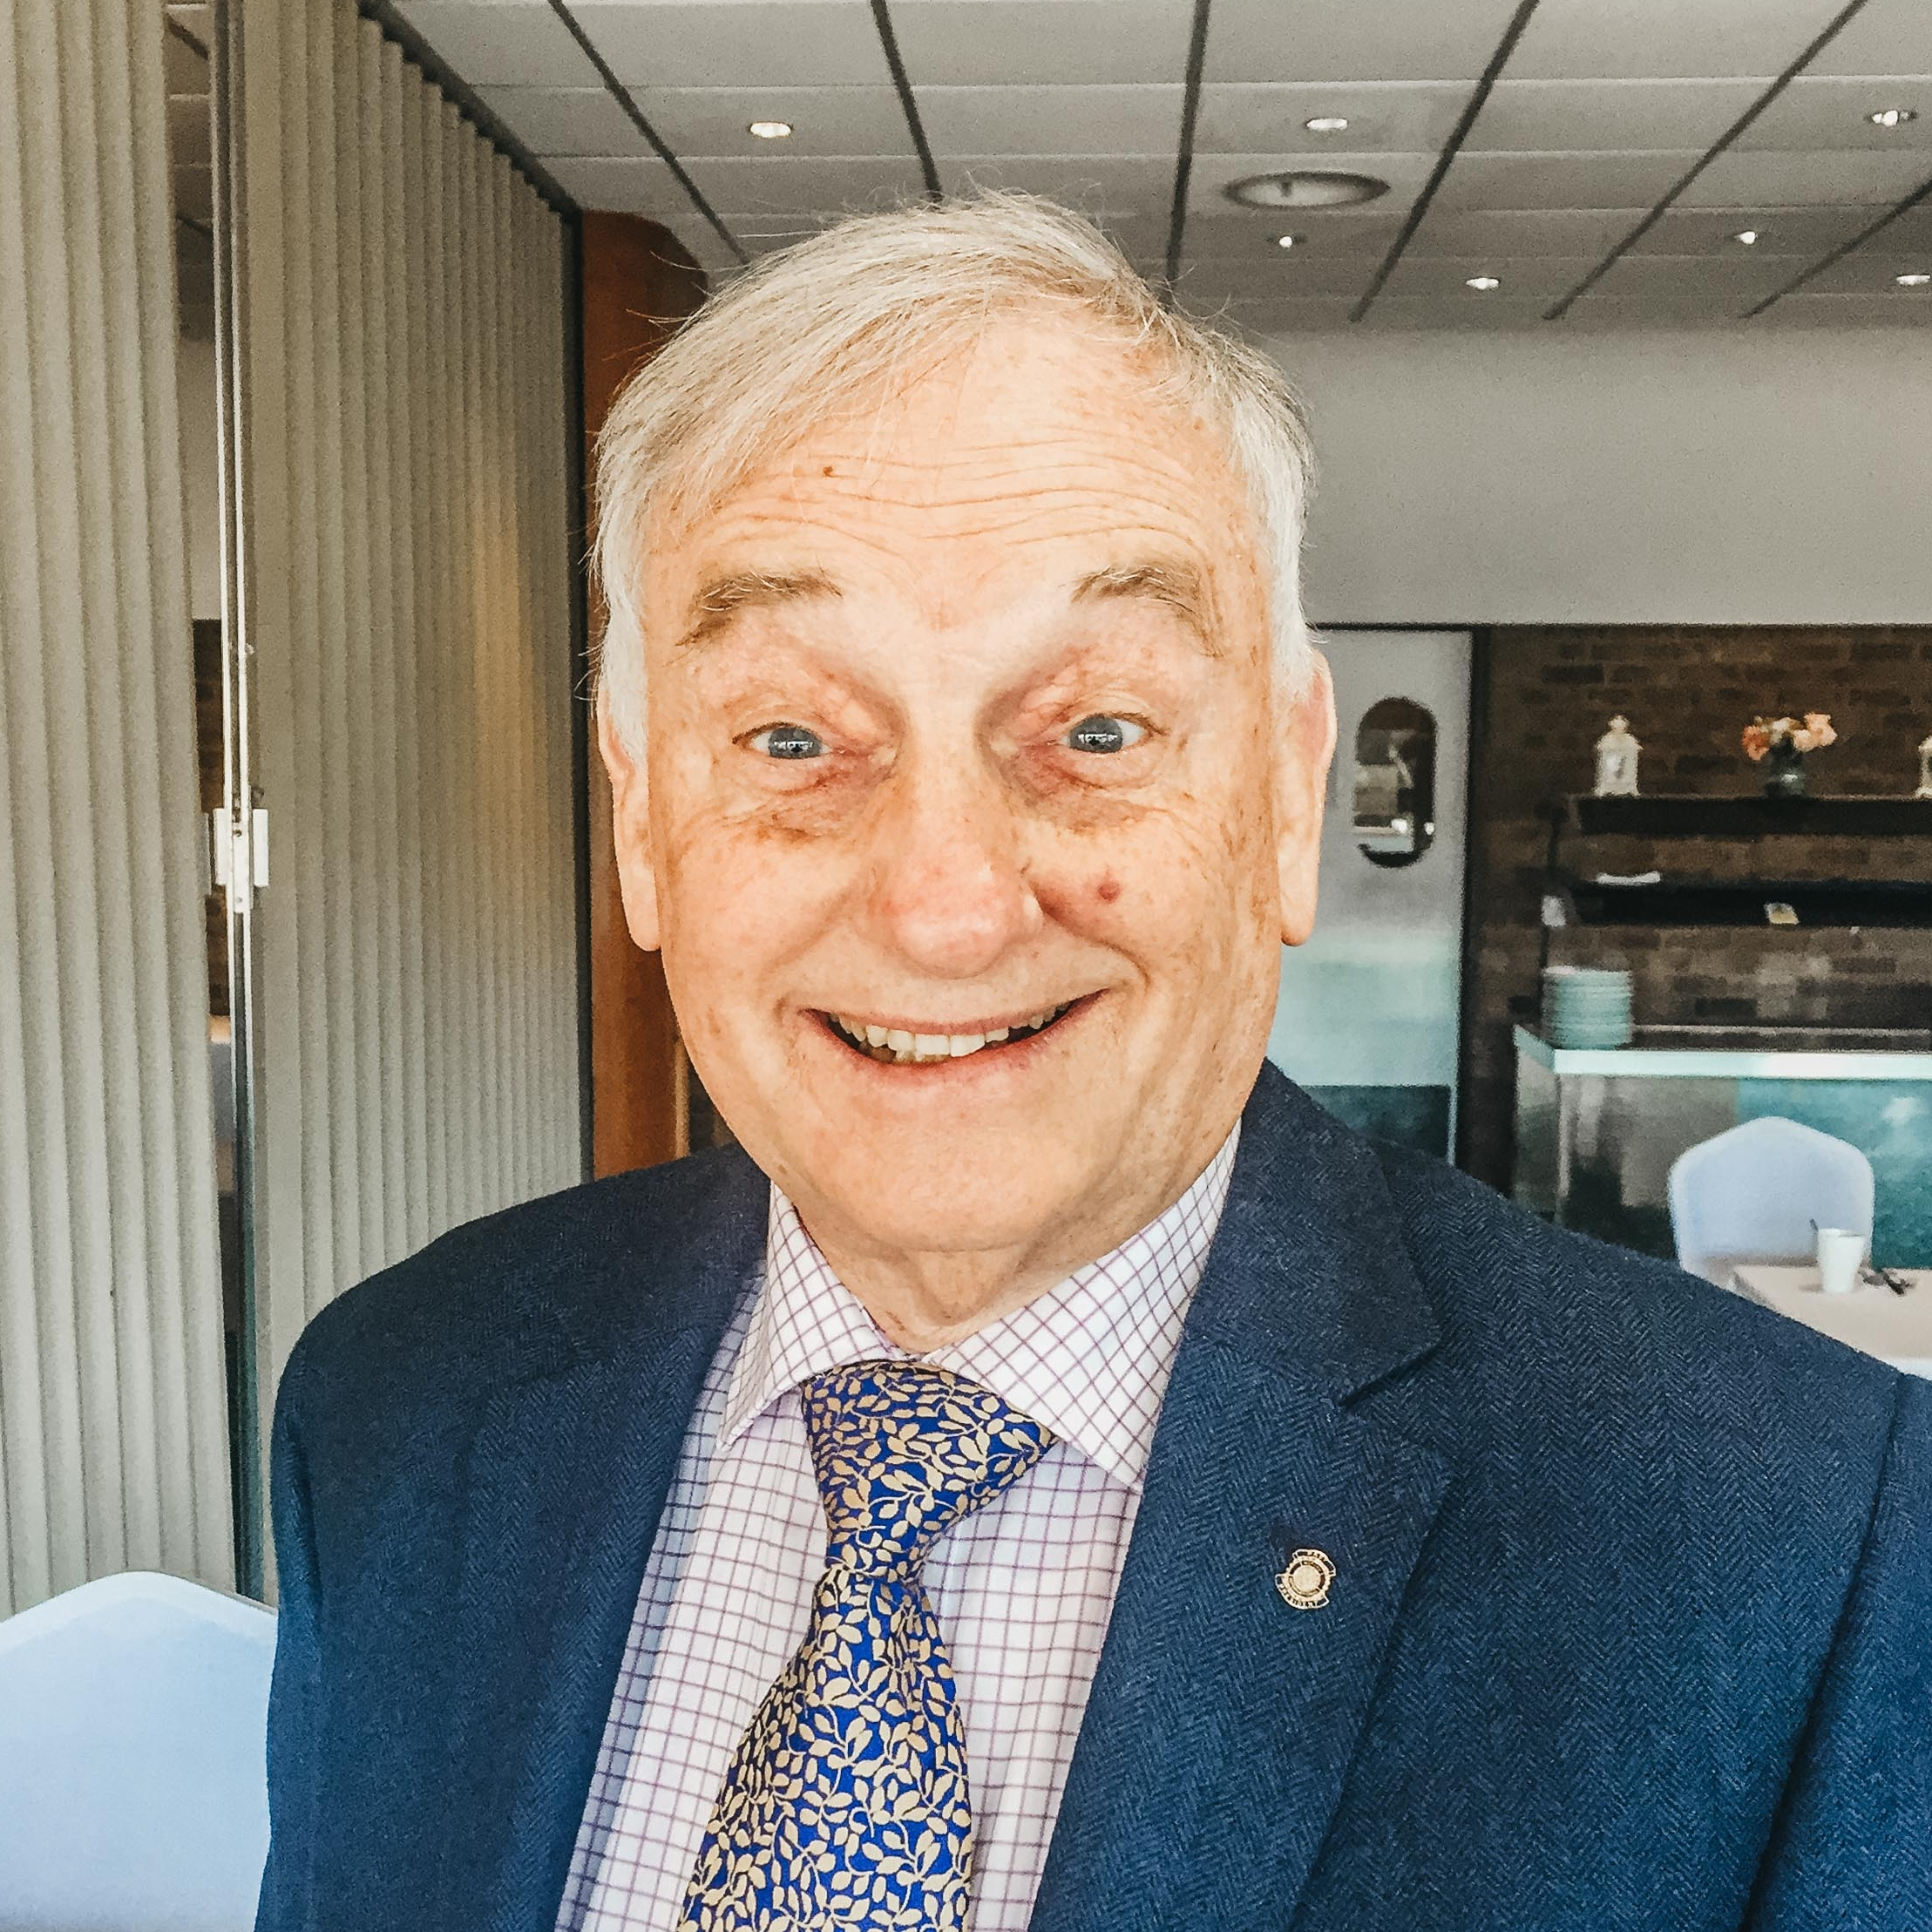 Derek Wood, Trustee - Being a trustee allows me to use my expertise in property management to benefit the homeless people in our local community. Signposts sets excellent standards in the provision of accommodation and I am proud to be a part of this charity.